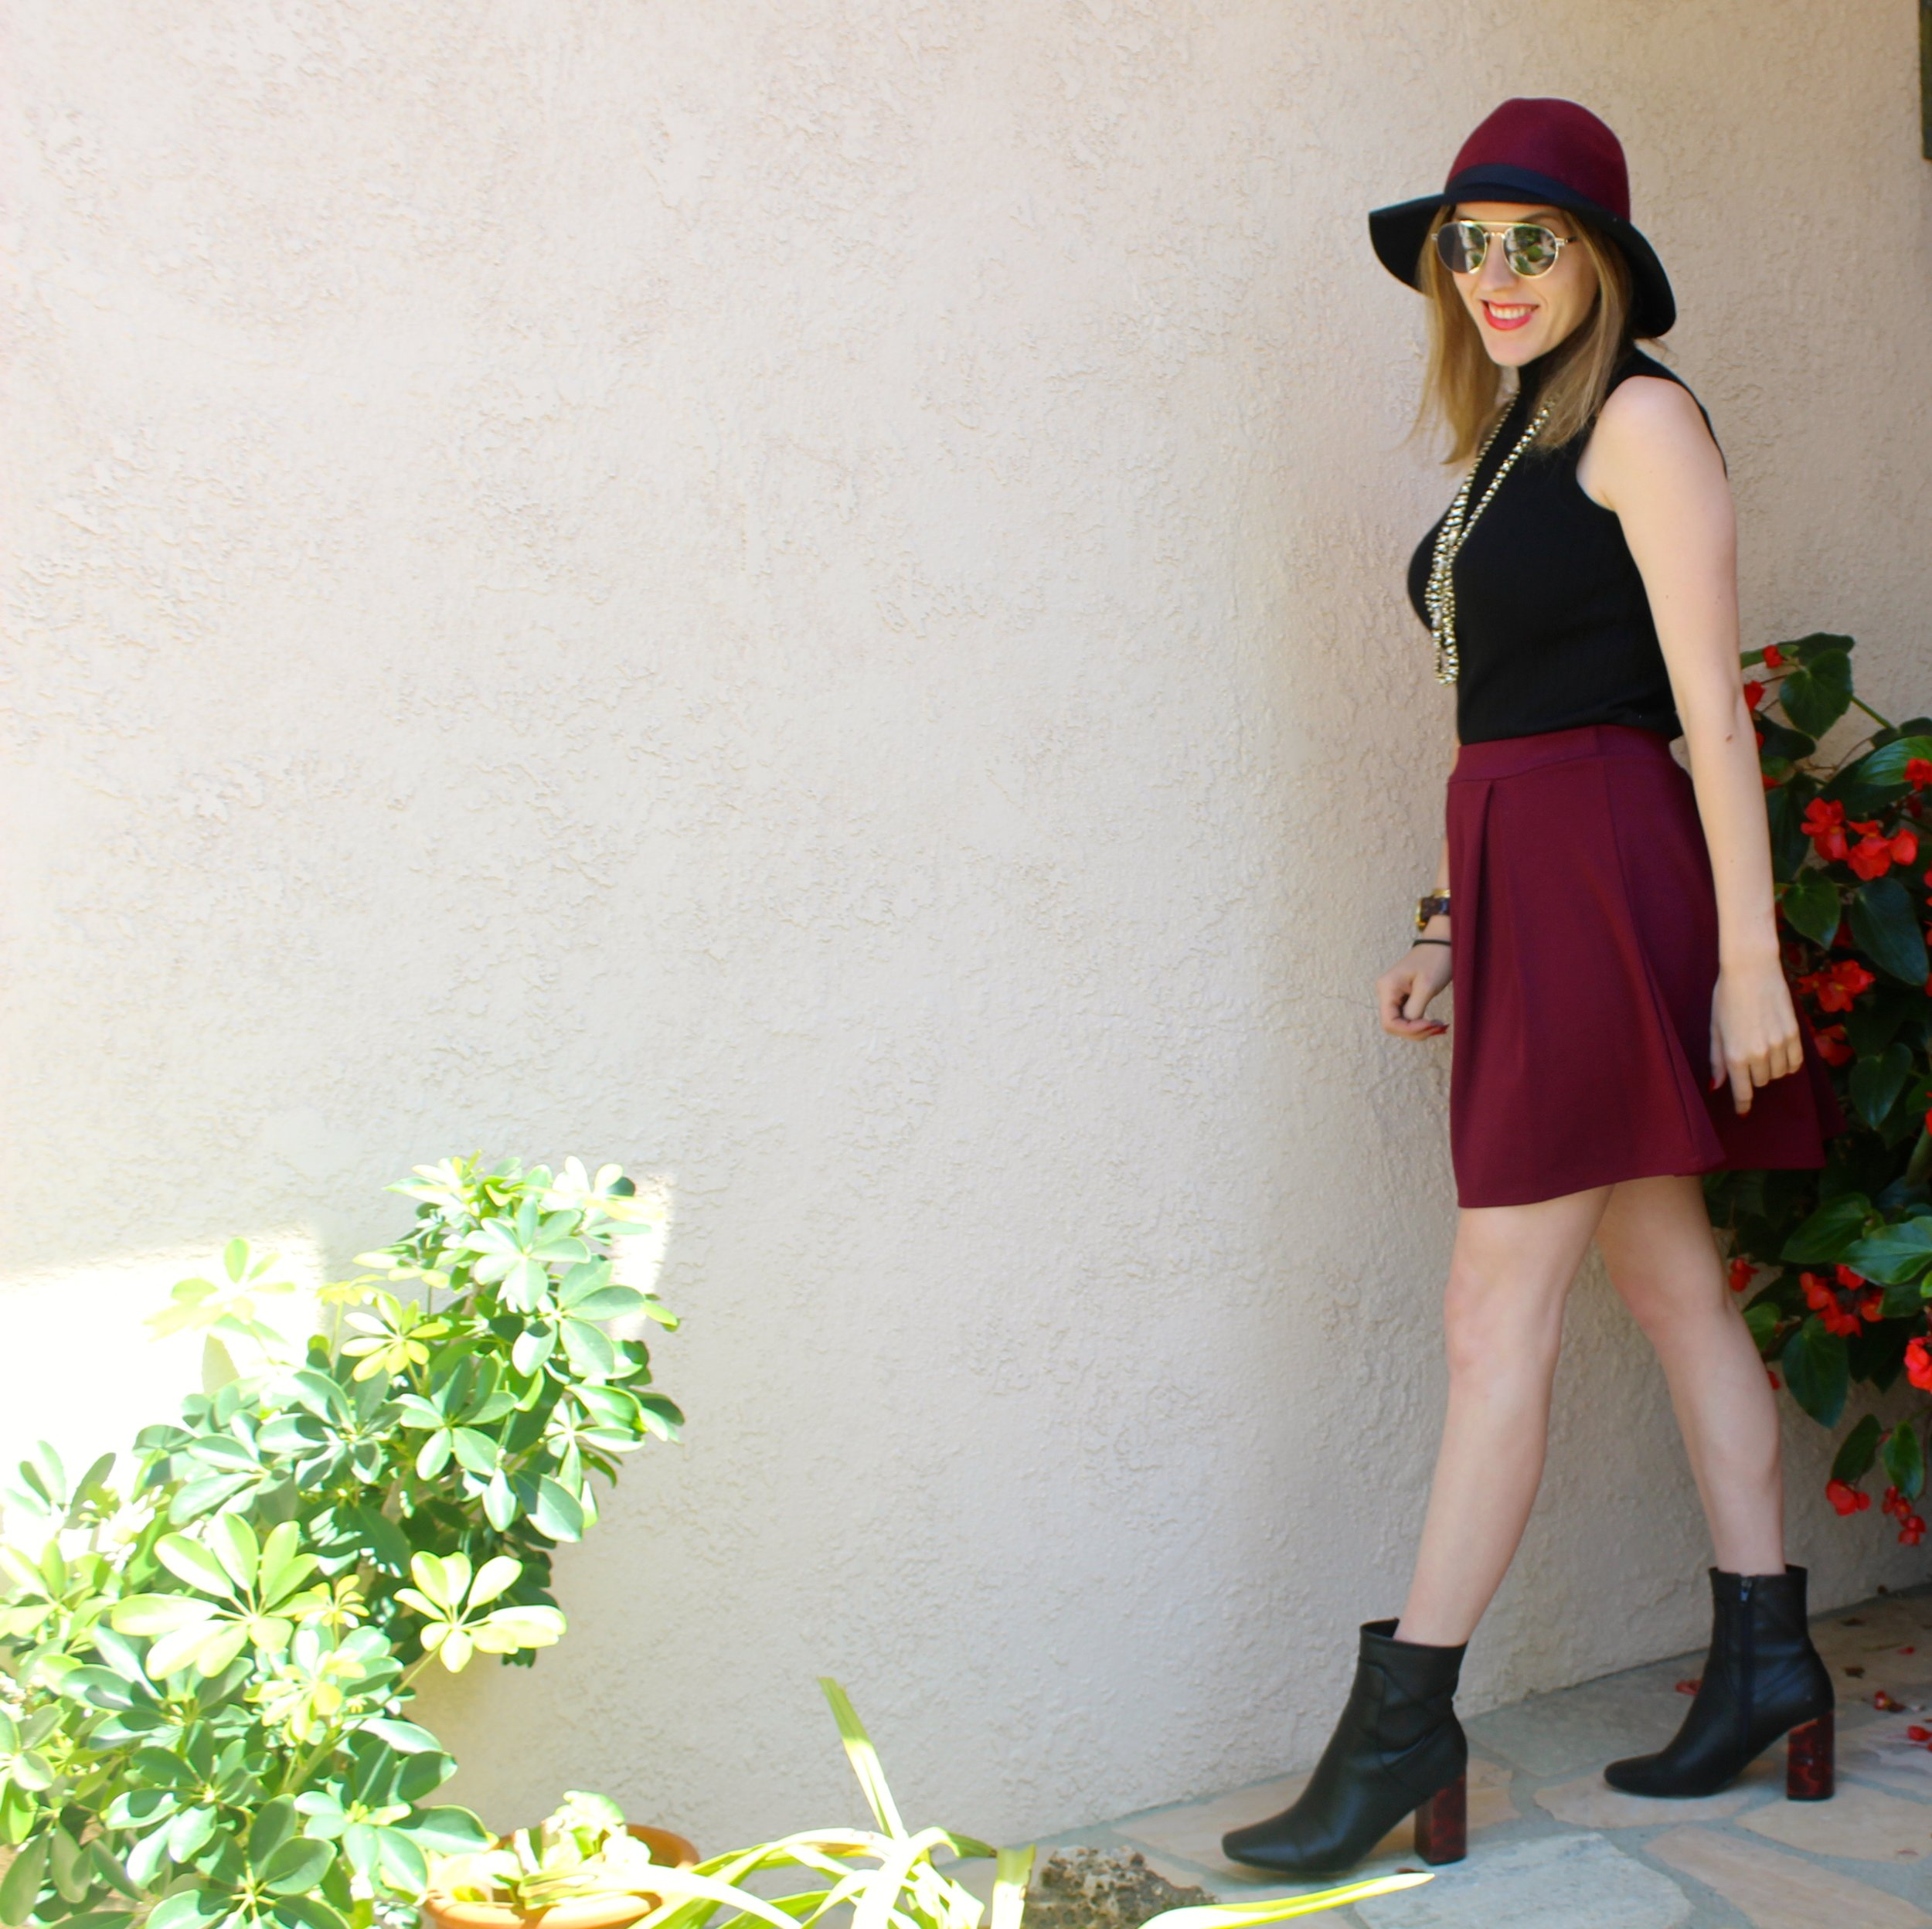 Hat: Charlotte Russe,  similar here  // Top: Banana Republic,  similar here   // Sunnies:  Le Specs  // Skirt:  Boohoo  // Necklace: Banana Republic,  similar here  // Boots:  Lost Ink    Its Wednesday and we are one day away from the start of fall. Although the weather in Los Angeles is still extremely hot, I am looking forward to the cooler weather this season! This look is my version of warm weather fall dressing. The burgundy and black are perfect colors for any fall wardrobe. Adding a turtleneck also makes this look fall inspired. These black tortoise shell boots are one of my favorite pairs of ankle booties. I love where they hit just above the ankle. The bold heel also makes a fashionable statement whenever I wear them and I love that they feel extremely unique! This is an outfit that can easily be taken into colder weather by adding some tights and a long sleeve turtleneck sweater rather than sleeveless. In fact, I will most likely recreate this look in the near future! Stay tuned!  Thanks for stopping by and keep following for more new looks!!! Ciao!!!  xx Nicole